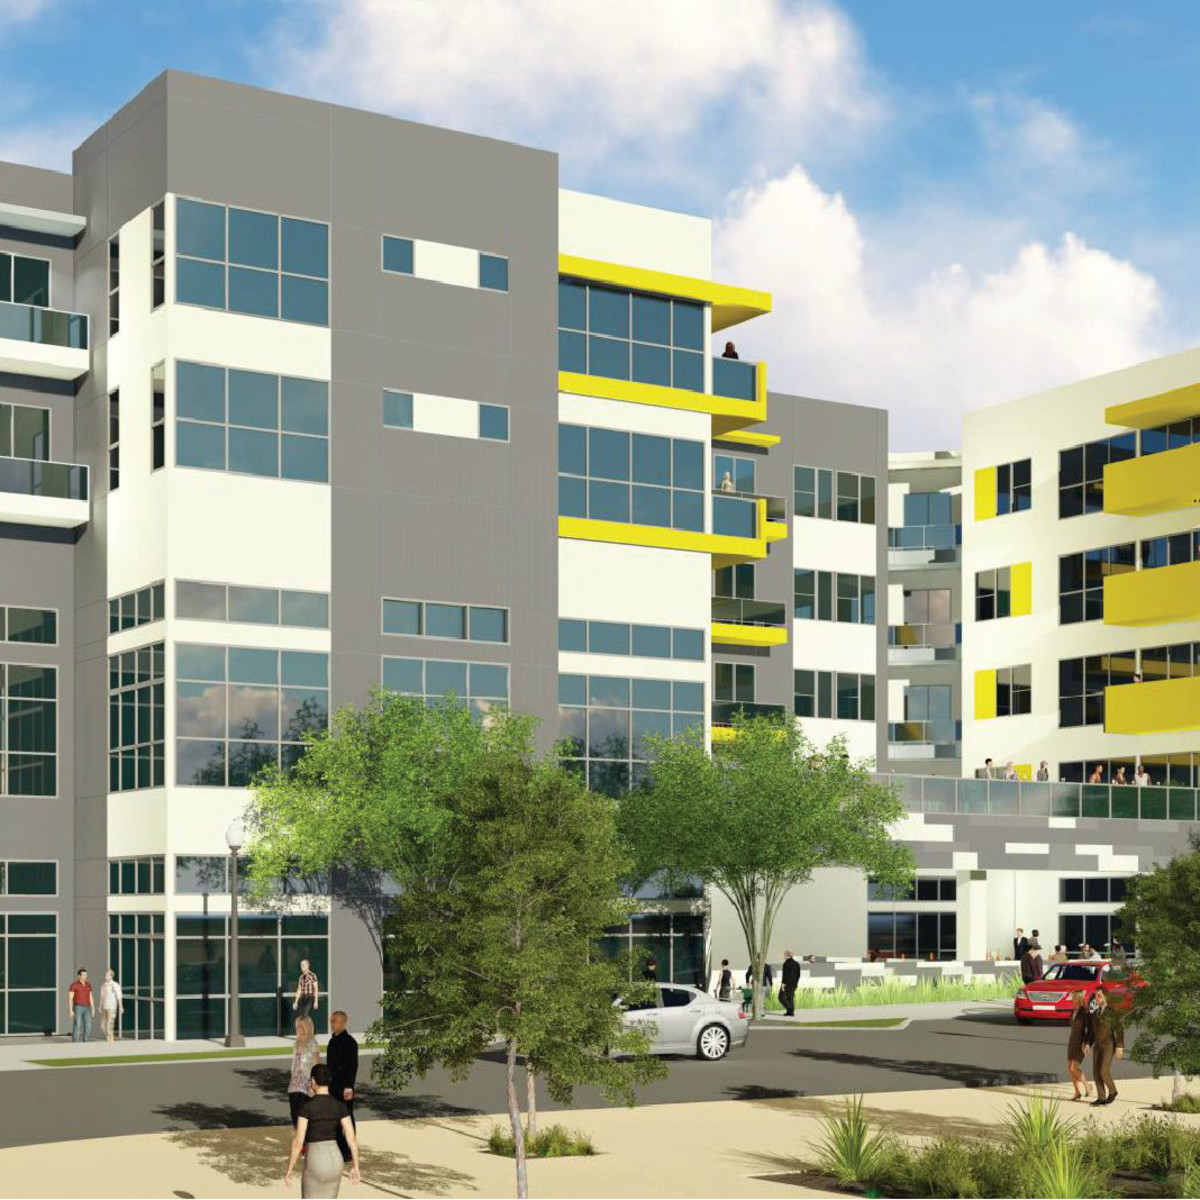 Southside Communities Apartments Rentals: Fort Worth's Near Southside Is Getting A New Luxury Mixed